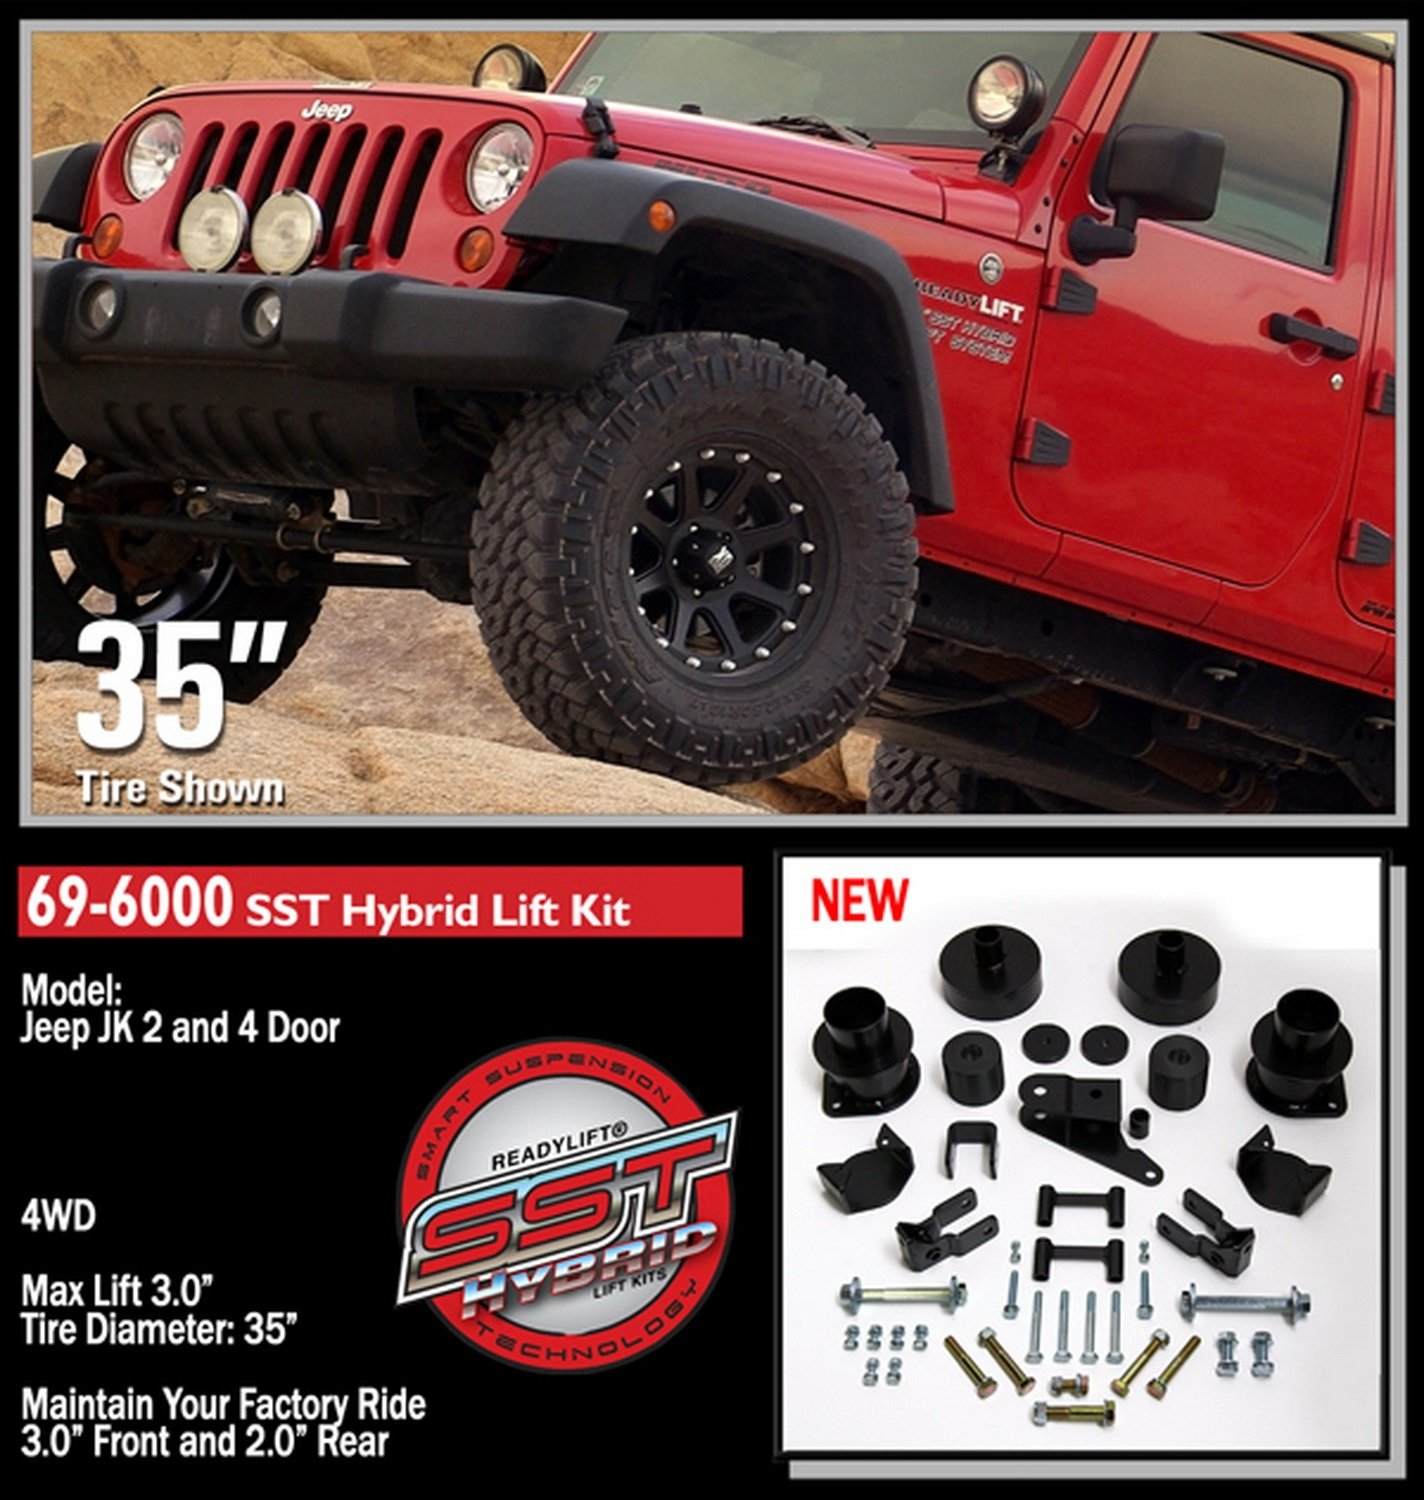 watch rough lift youtube by unlimited kit jeep country wrangler kits inch suspension